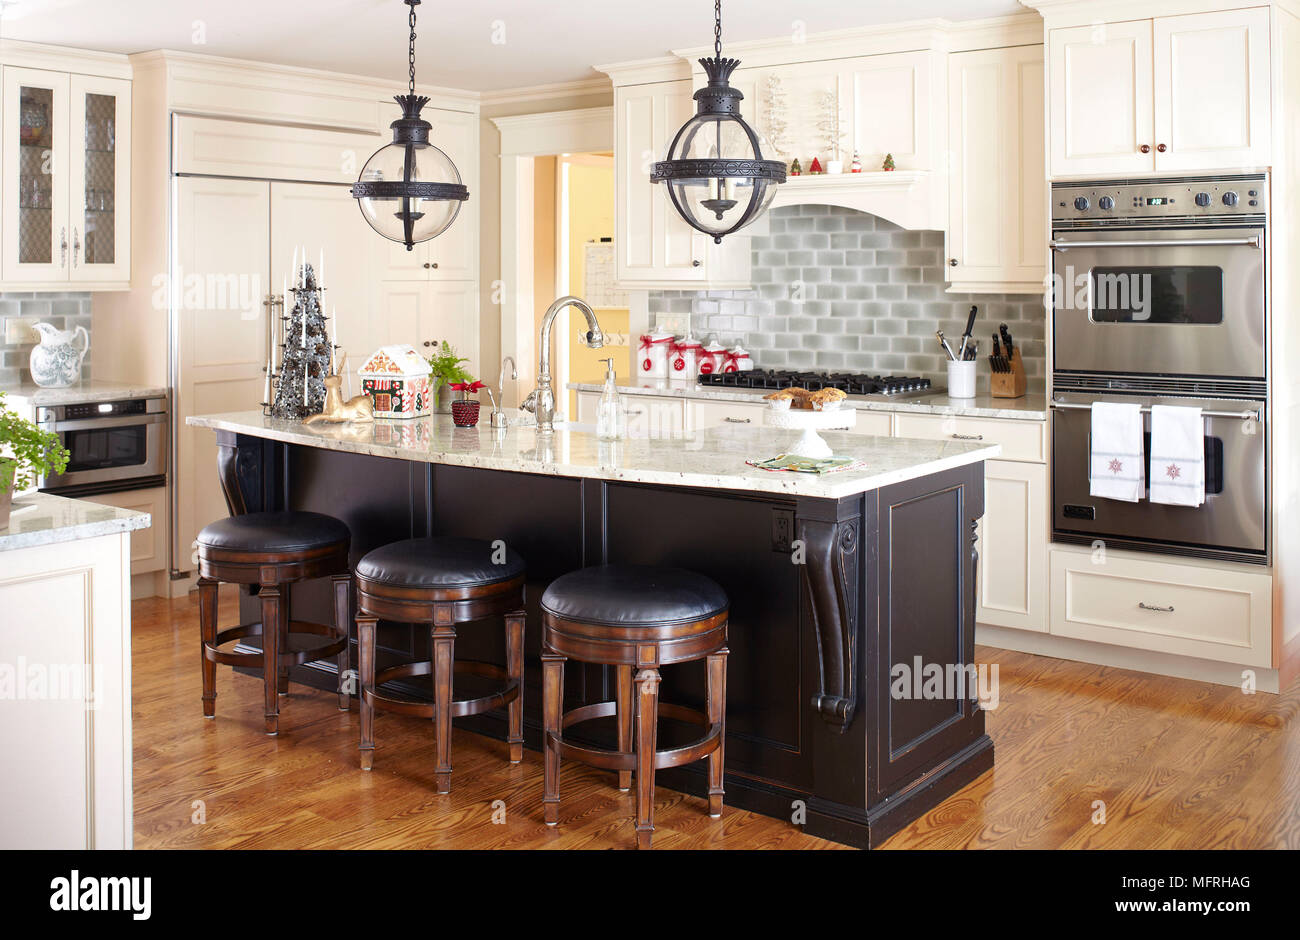 Bar Stools At Kitchen Island Breakfast Bar In Traditional Style Kitchen,  Fairfield, New Jersey, USA